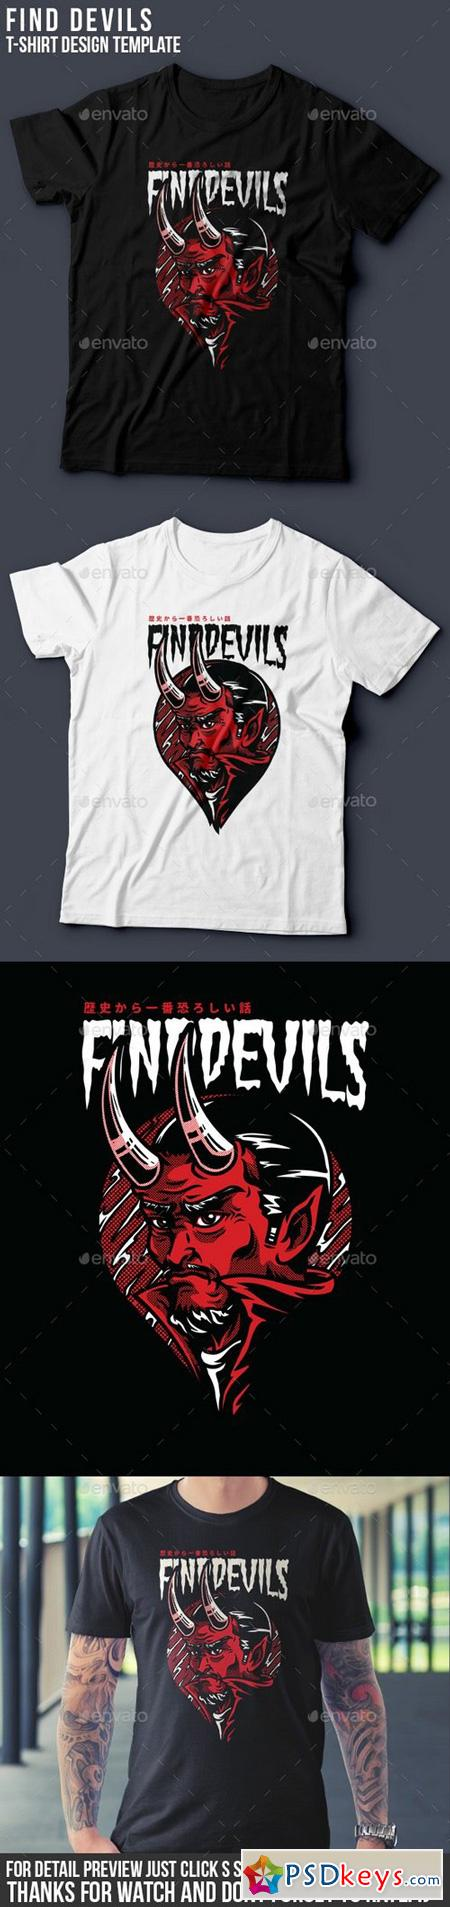 Find Devils T-Shirt Design 20451670